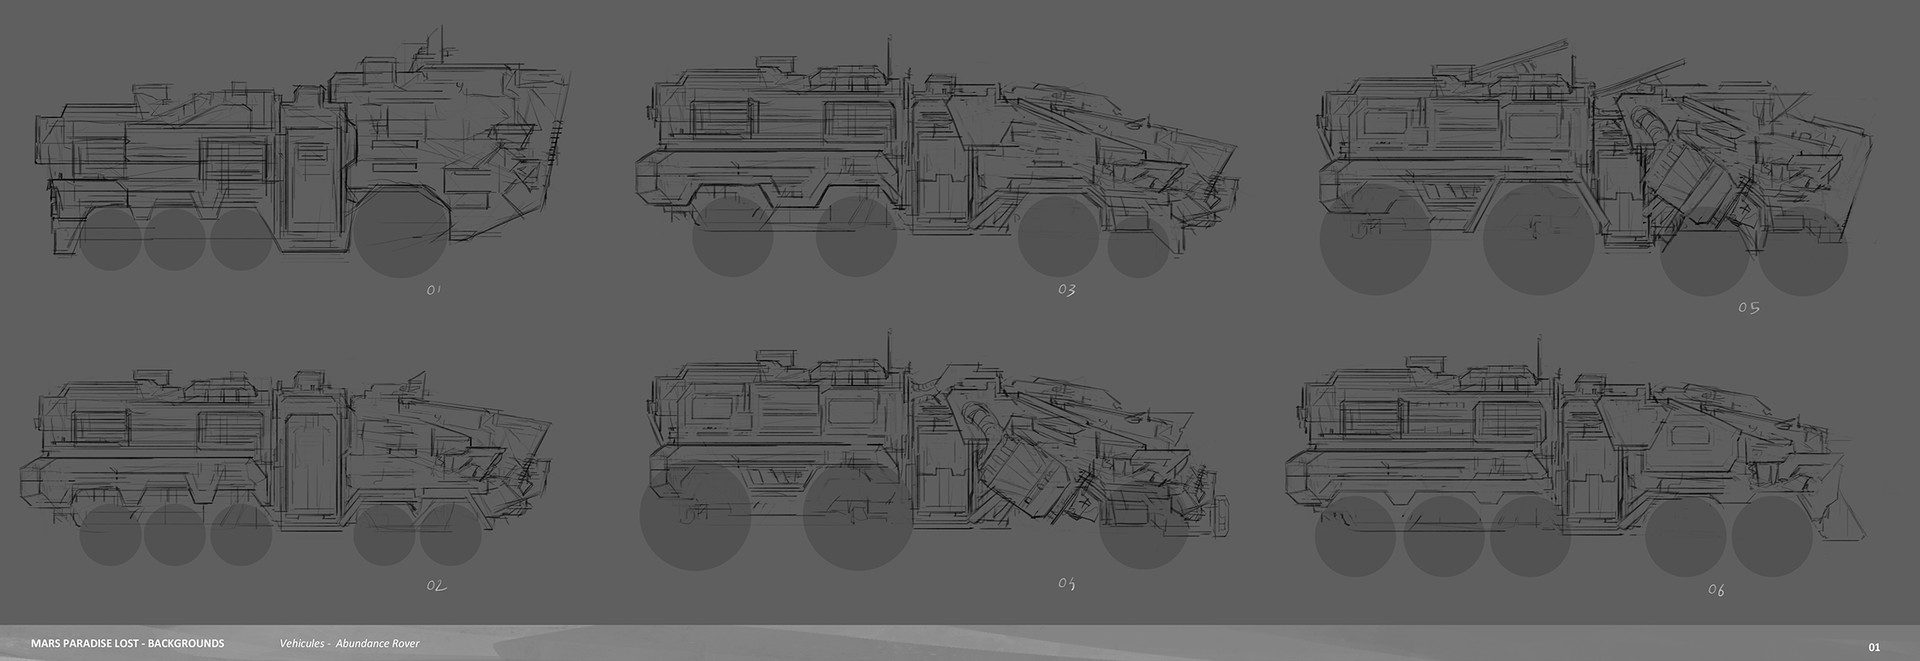 Alexandre chaudret mpl backgrounds vehicules rover01